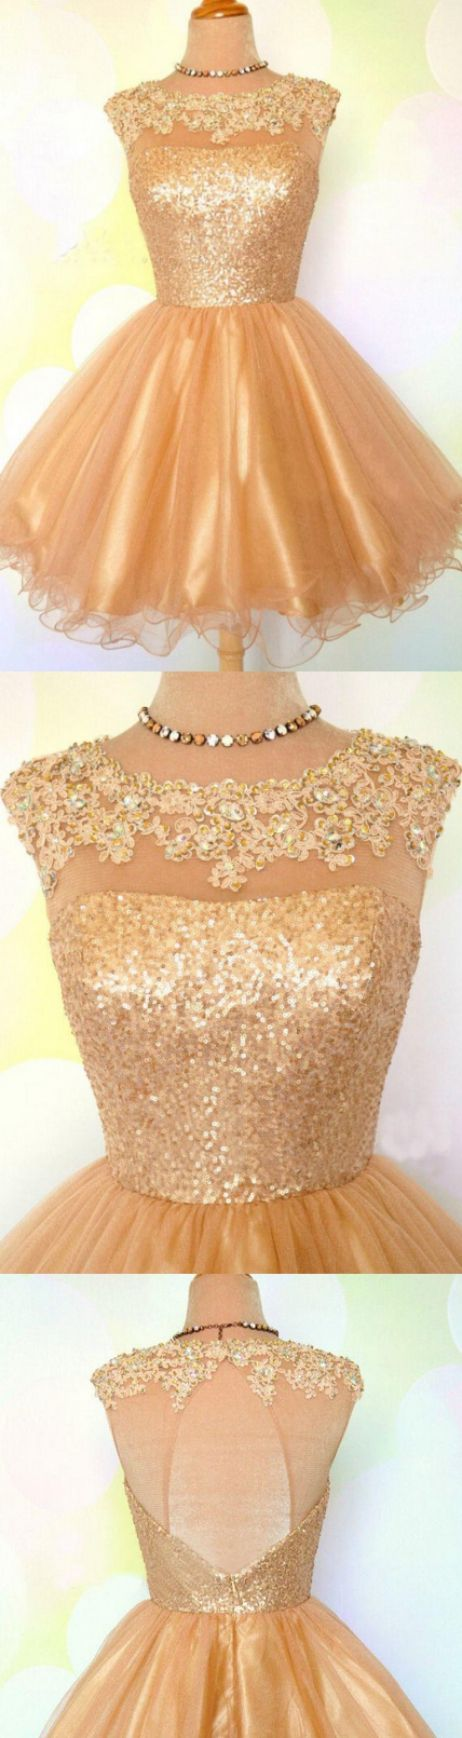 Princess homecoming dresses gold homecoming dresses short prom